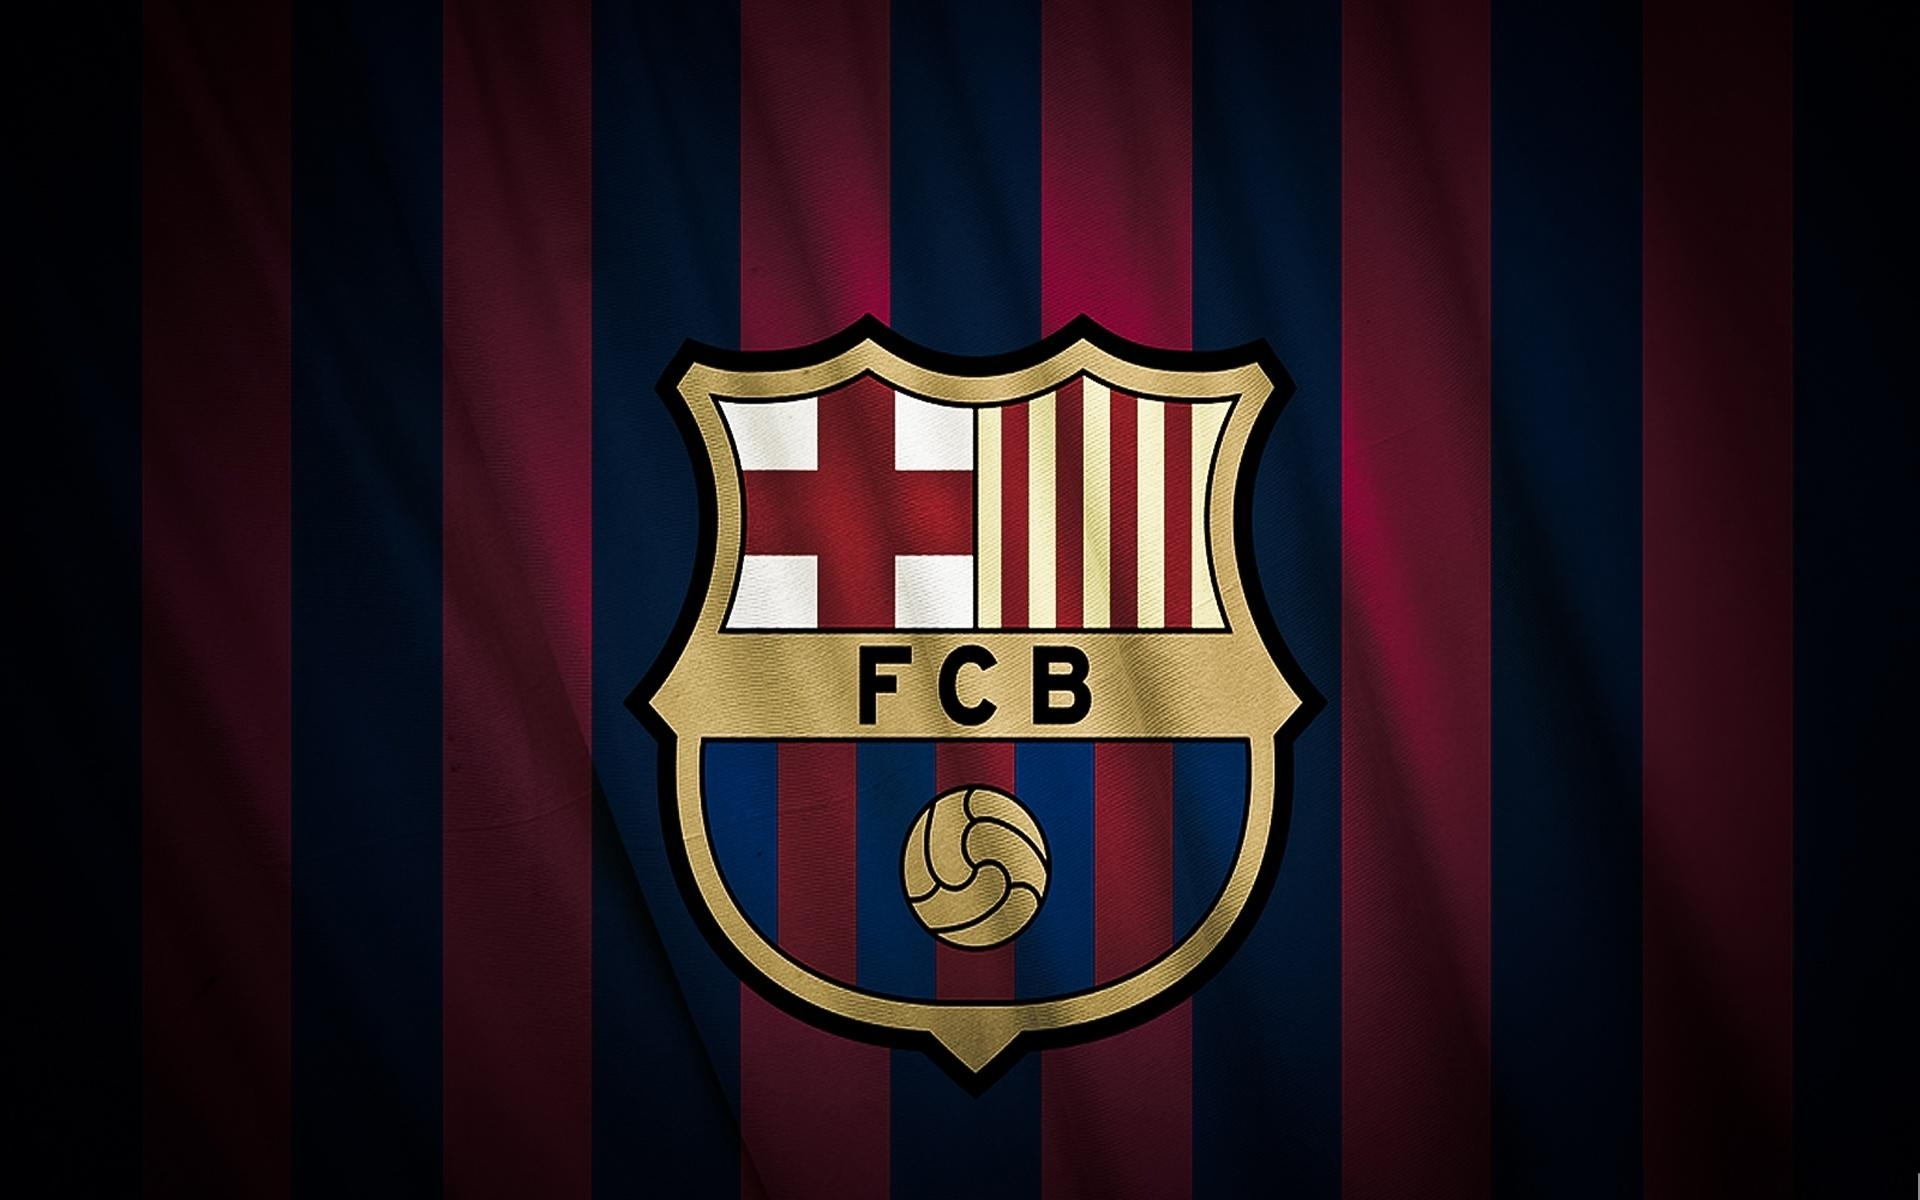 fc barcelona logo wallpaper download | pixelstalk